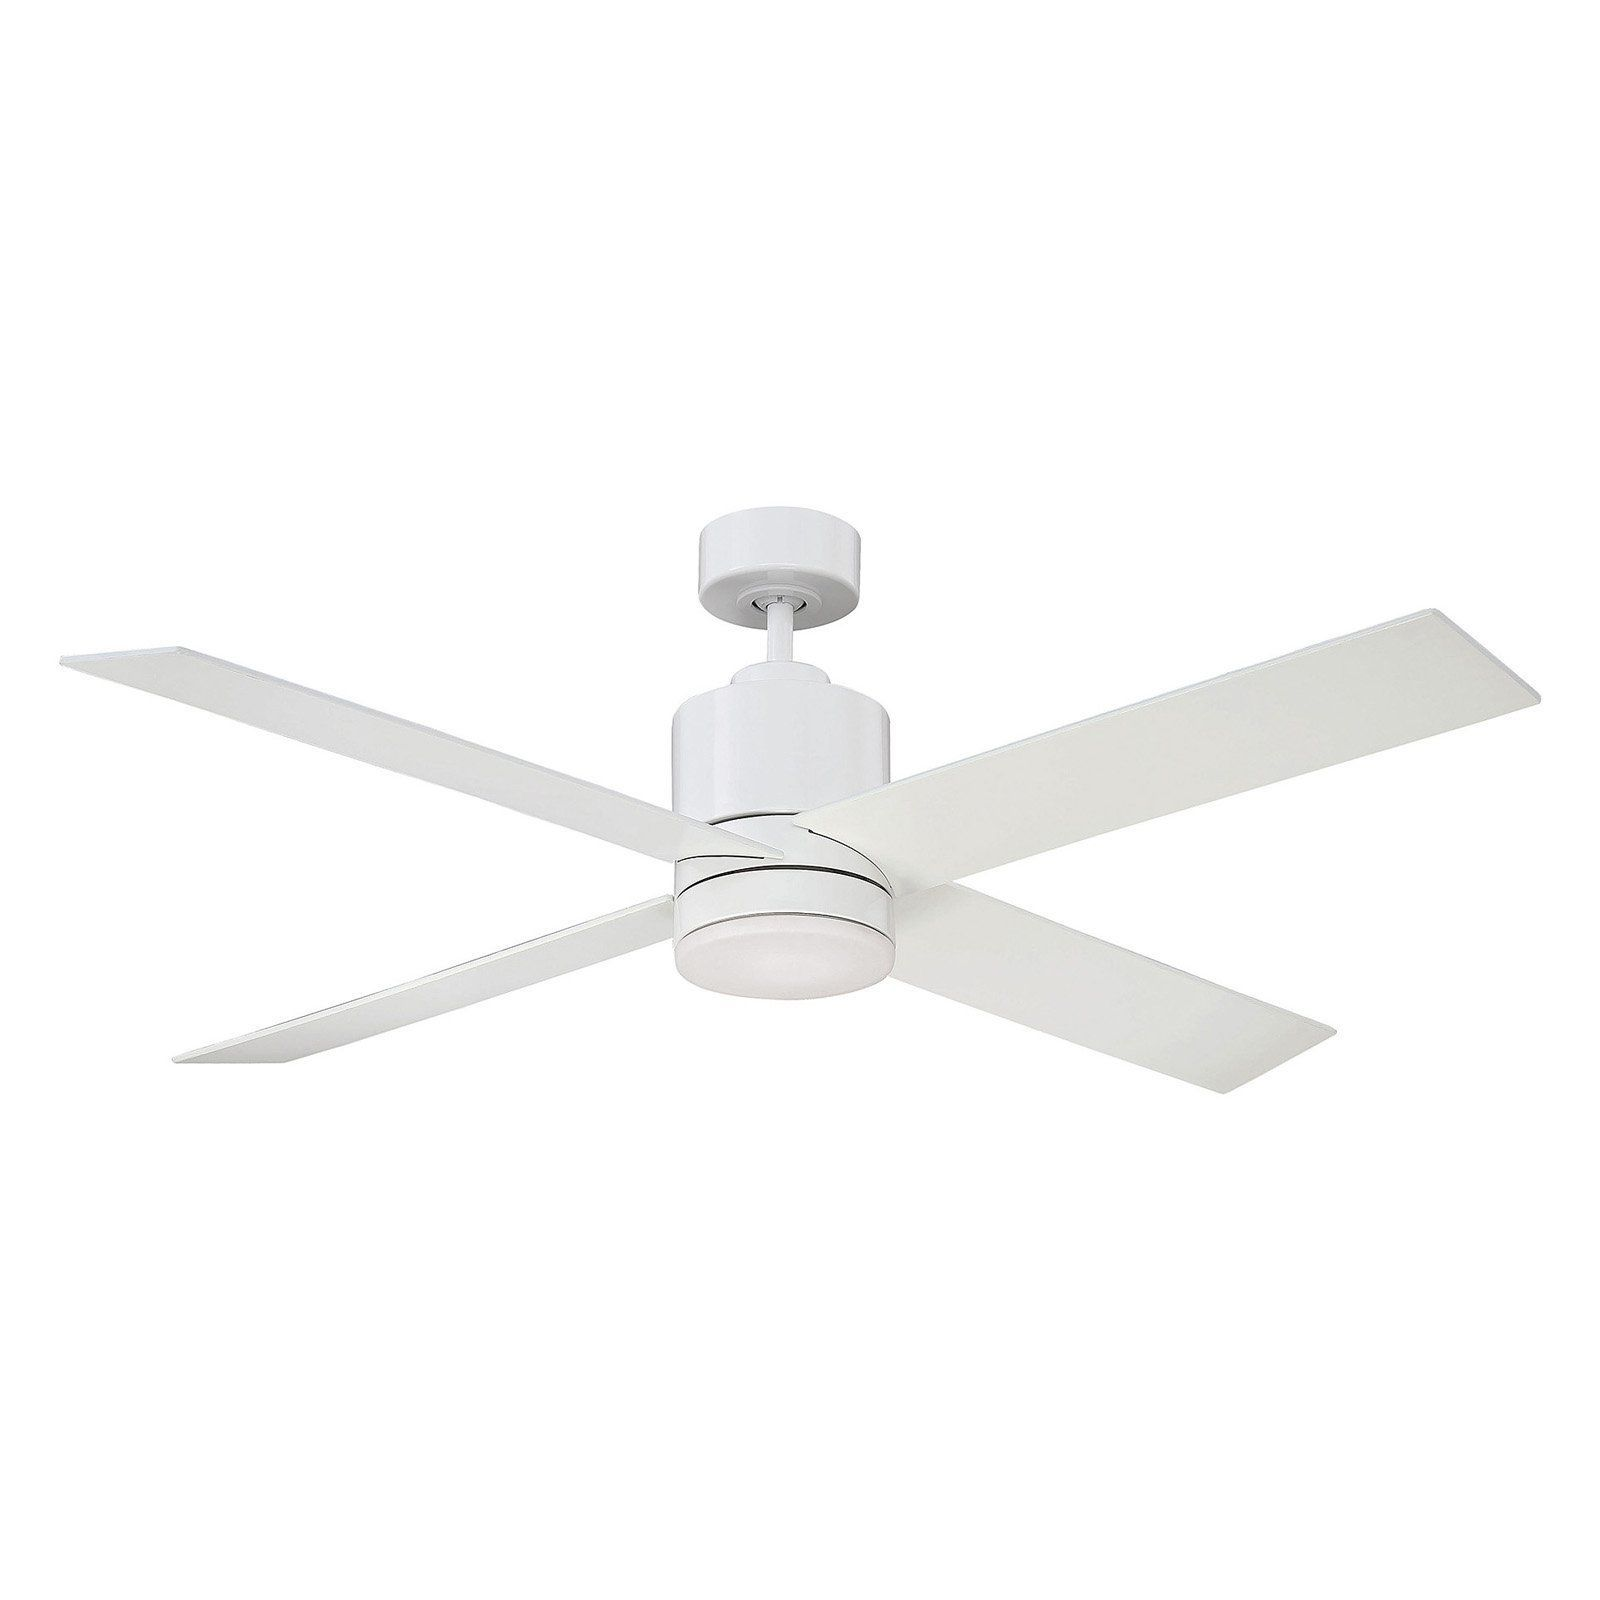 Savoy House Dayton 52-6110-4 52 in. Indoor Ceiling Fan | from hayneedle.com